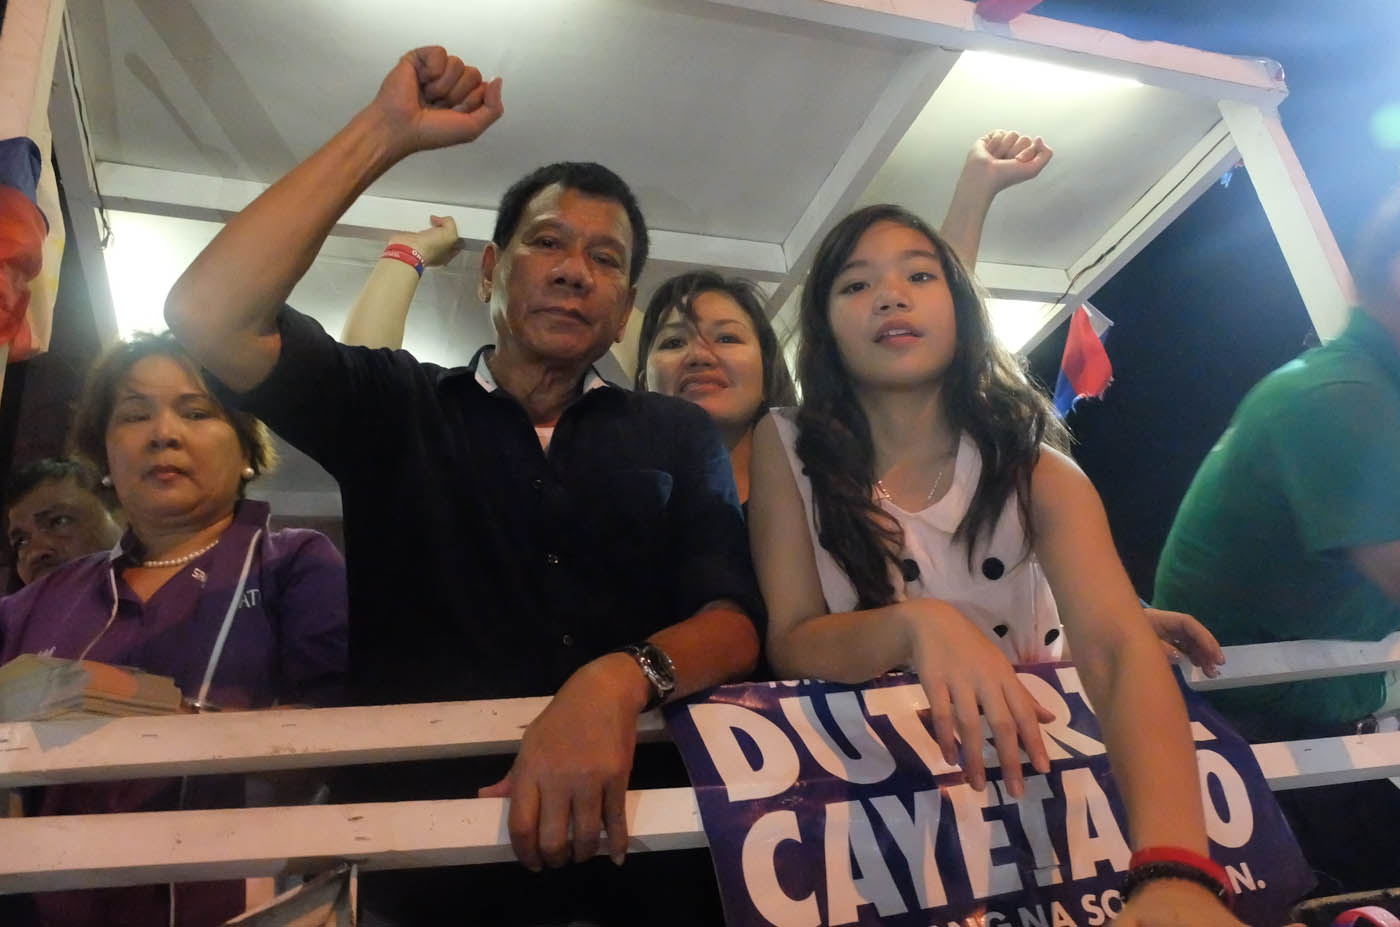 CAMPAIGN TRAIL. Honeylet Avanceu00f1a and her daughter Kitty join Duterte's motorcade in Malabon during the 2016 campaign season. Photo by Alecs Ongcal/ Rappler